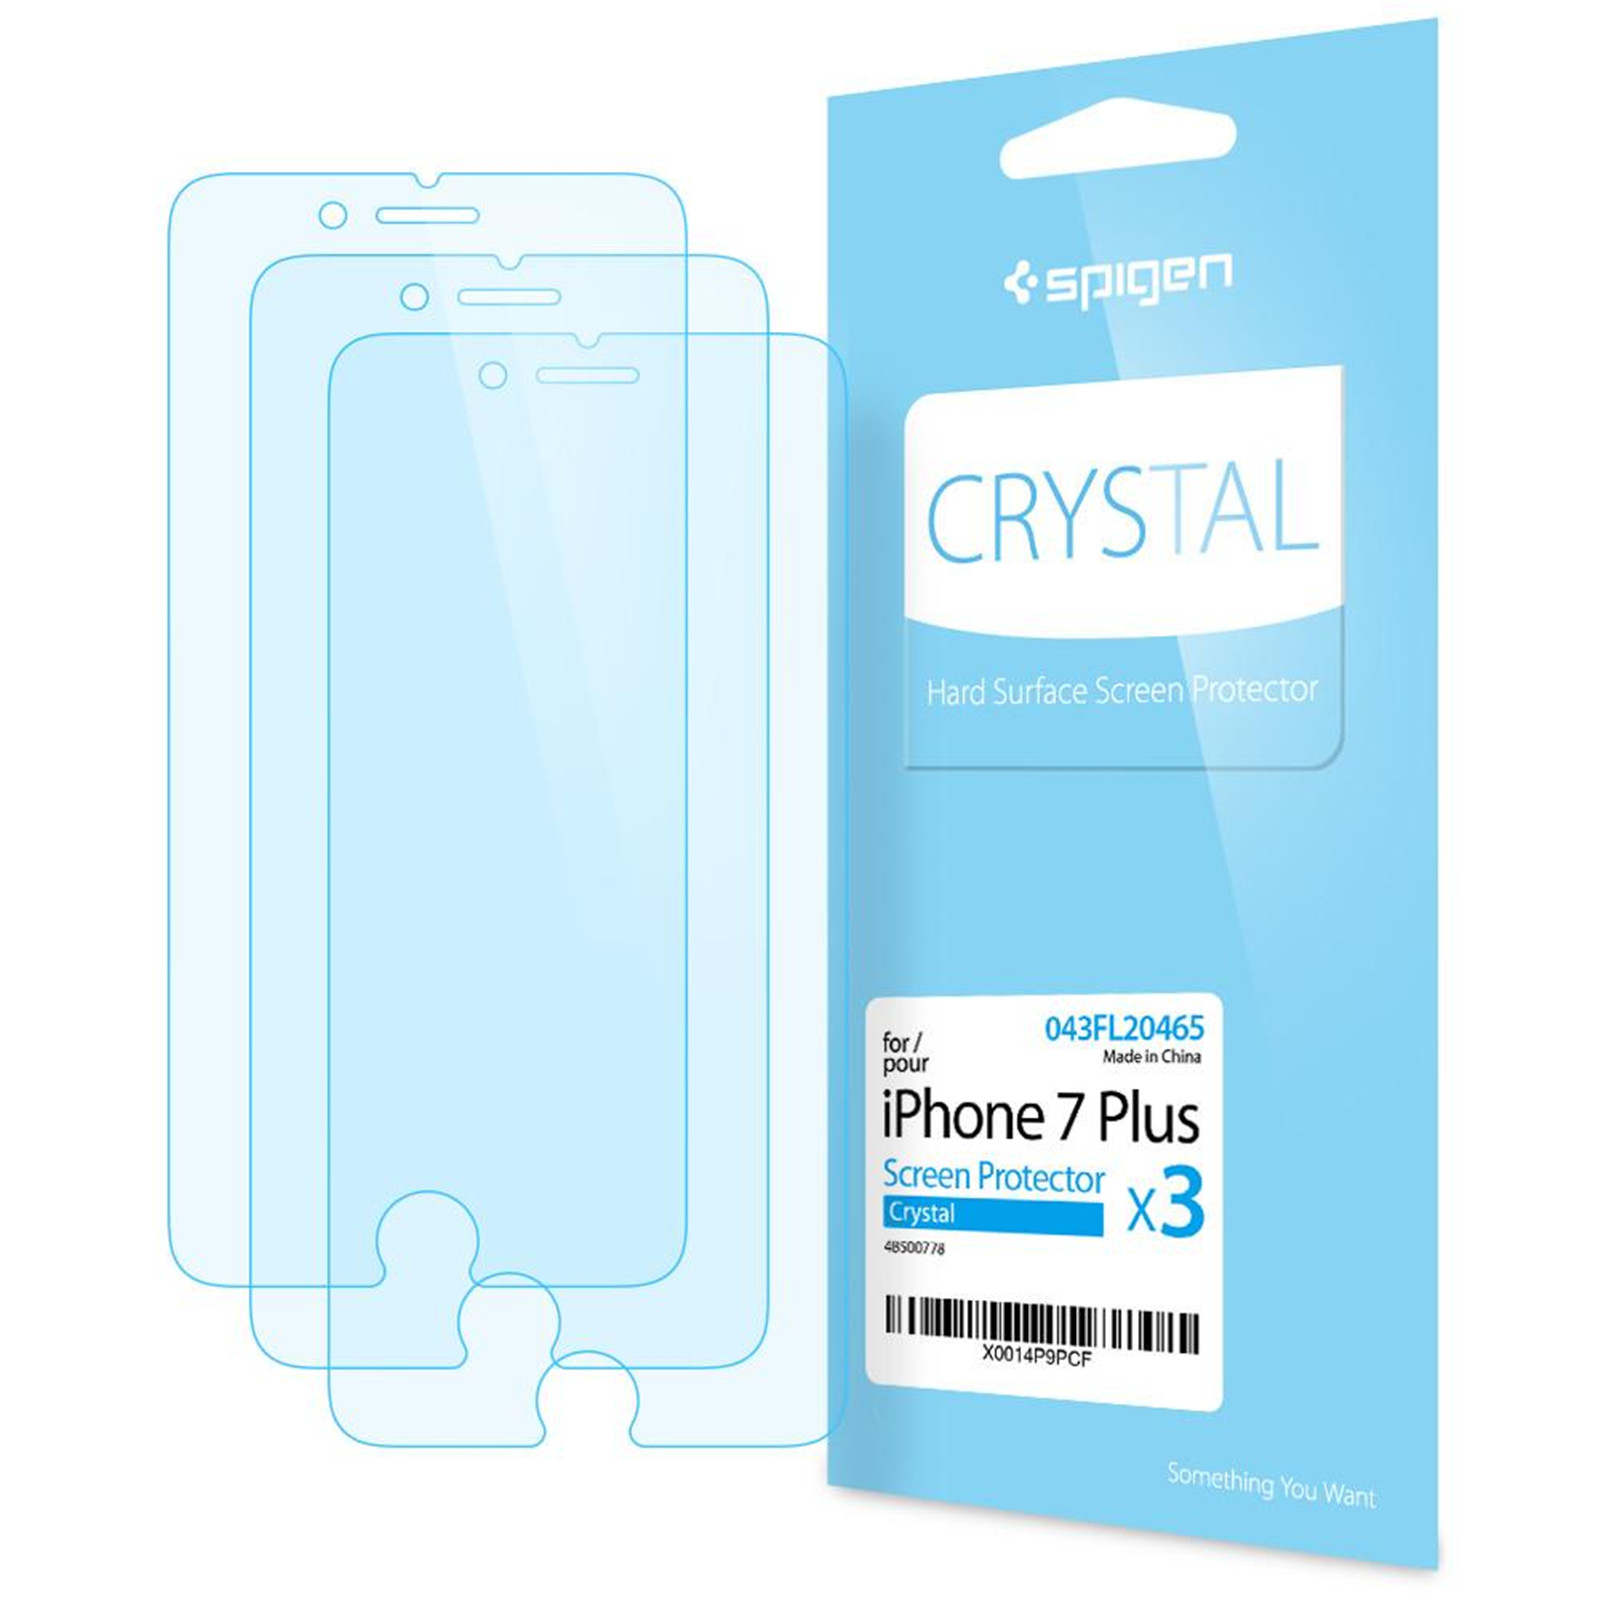 Buy The Spigen Iphone 8 Plus 7 Screen Protector Delicate Tough Tempered Glass Xr Glastr Slim Hd Original Toughhdultra Clear Front Protectors X3 043fl20465